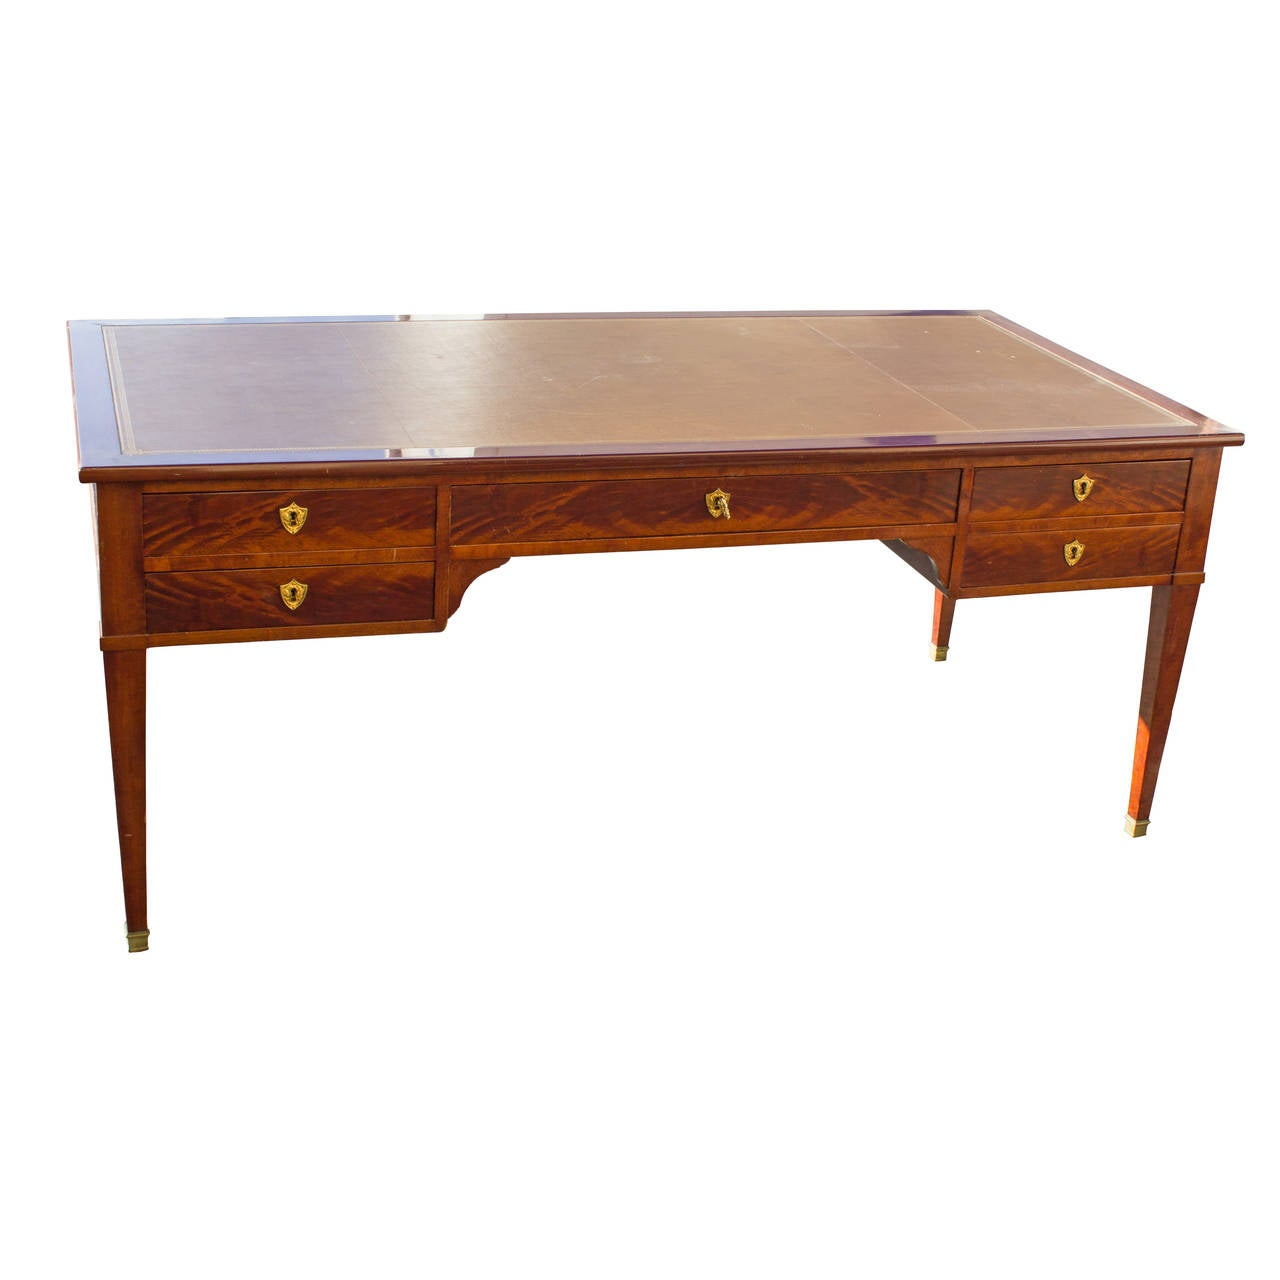 A Directoire style desk, circa 1940 with an inset leather top and brass hardware.